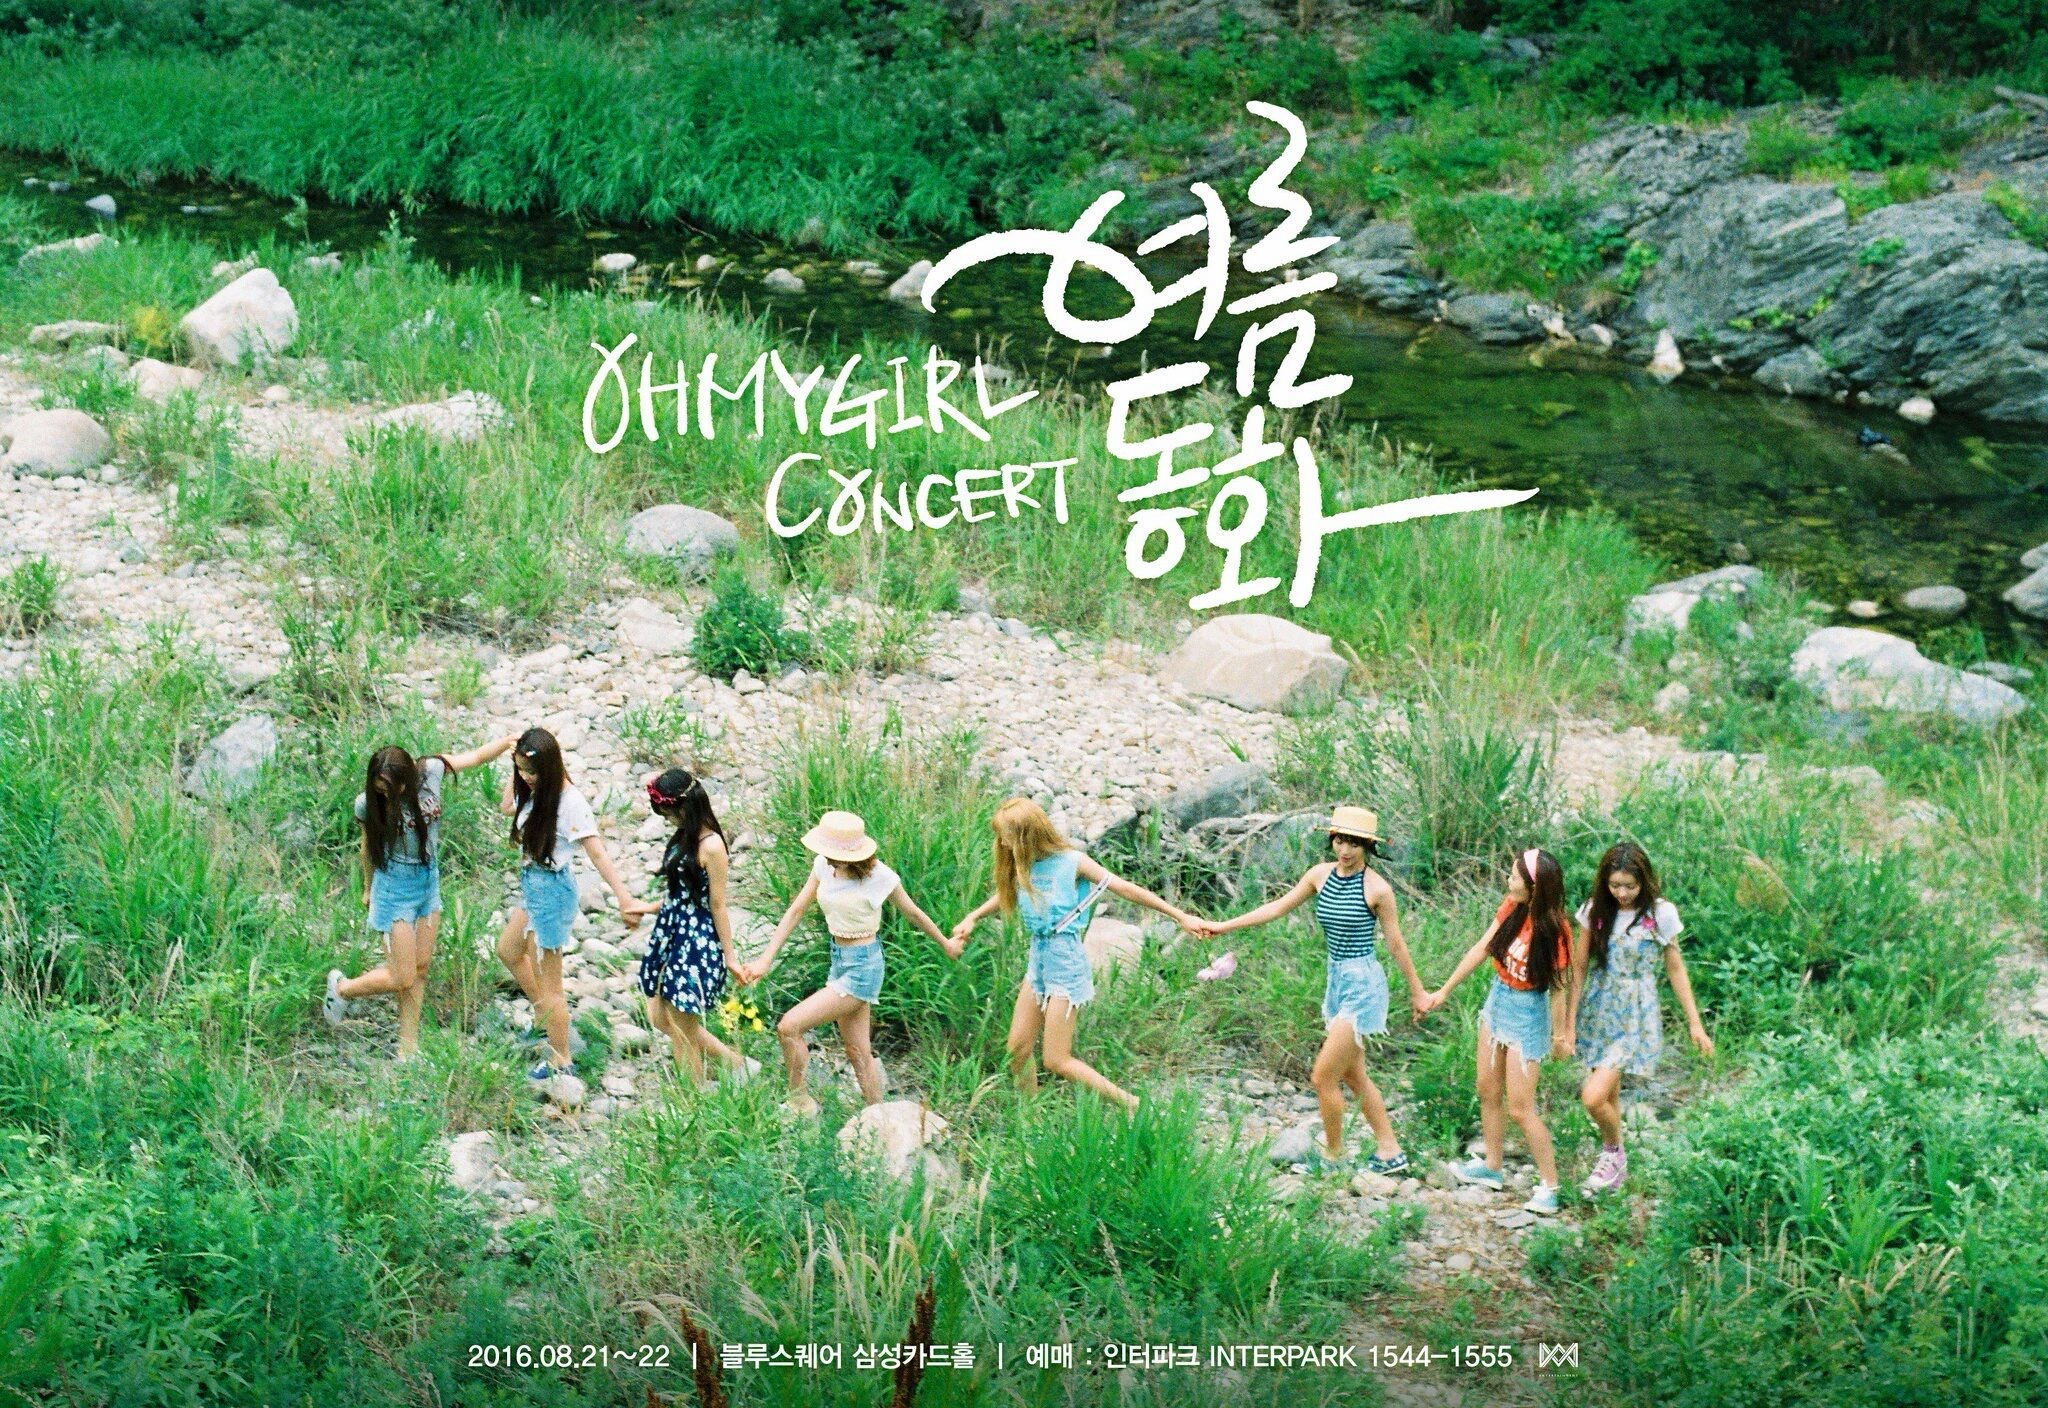 Image: Oh My Girl concert poster / WM Entertainment